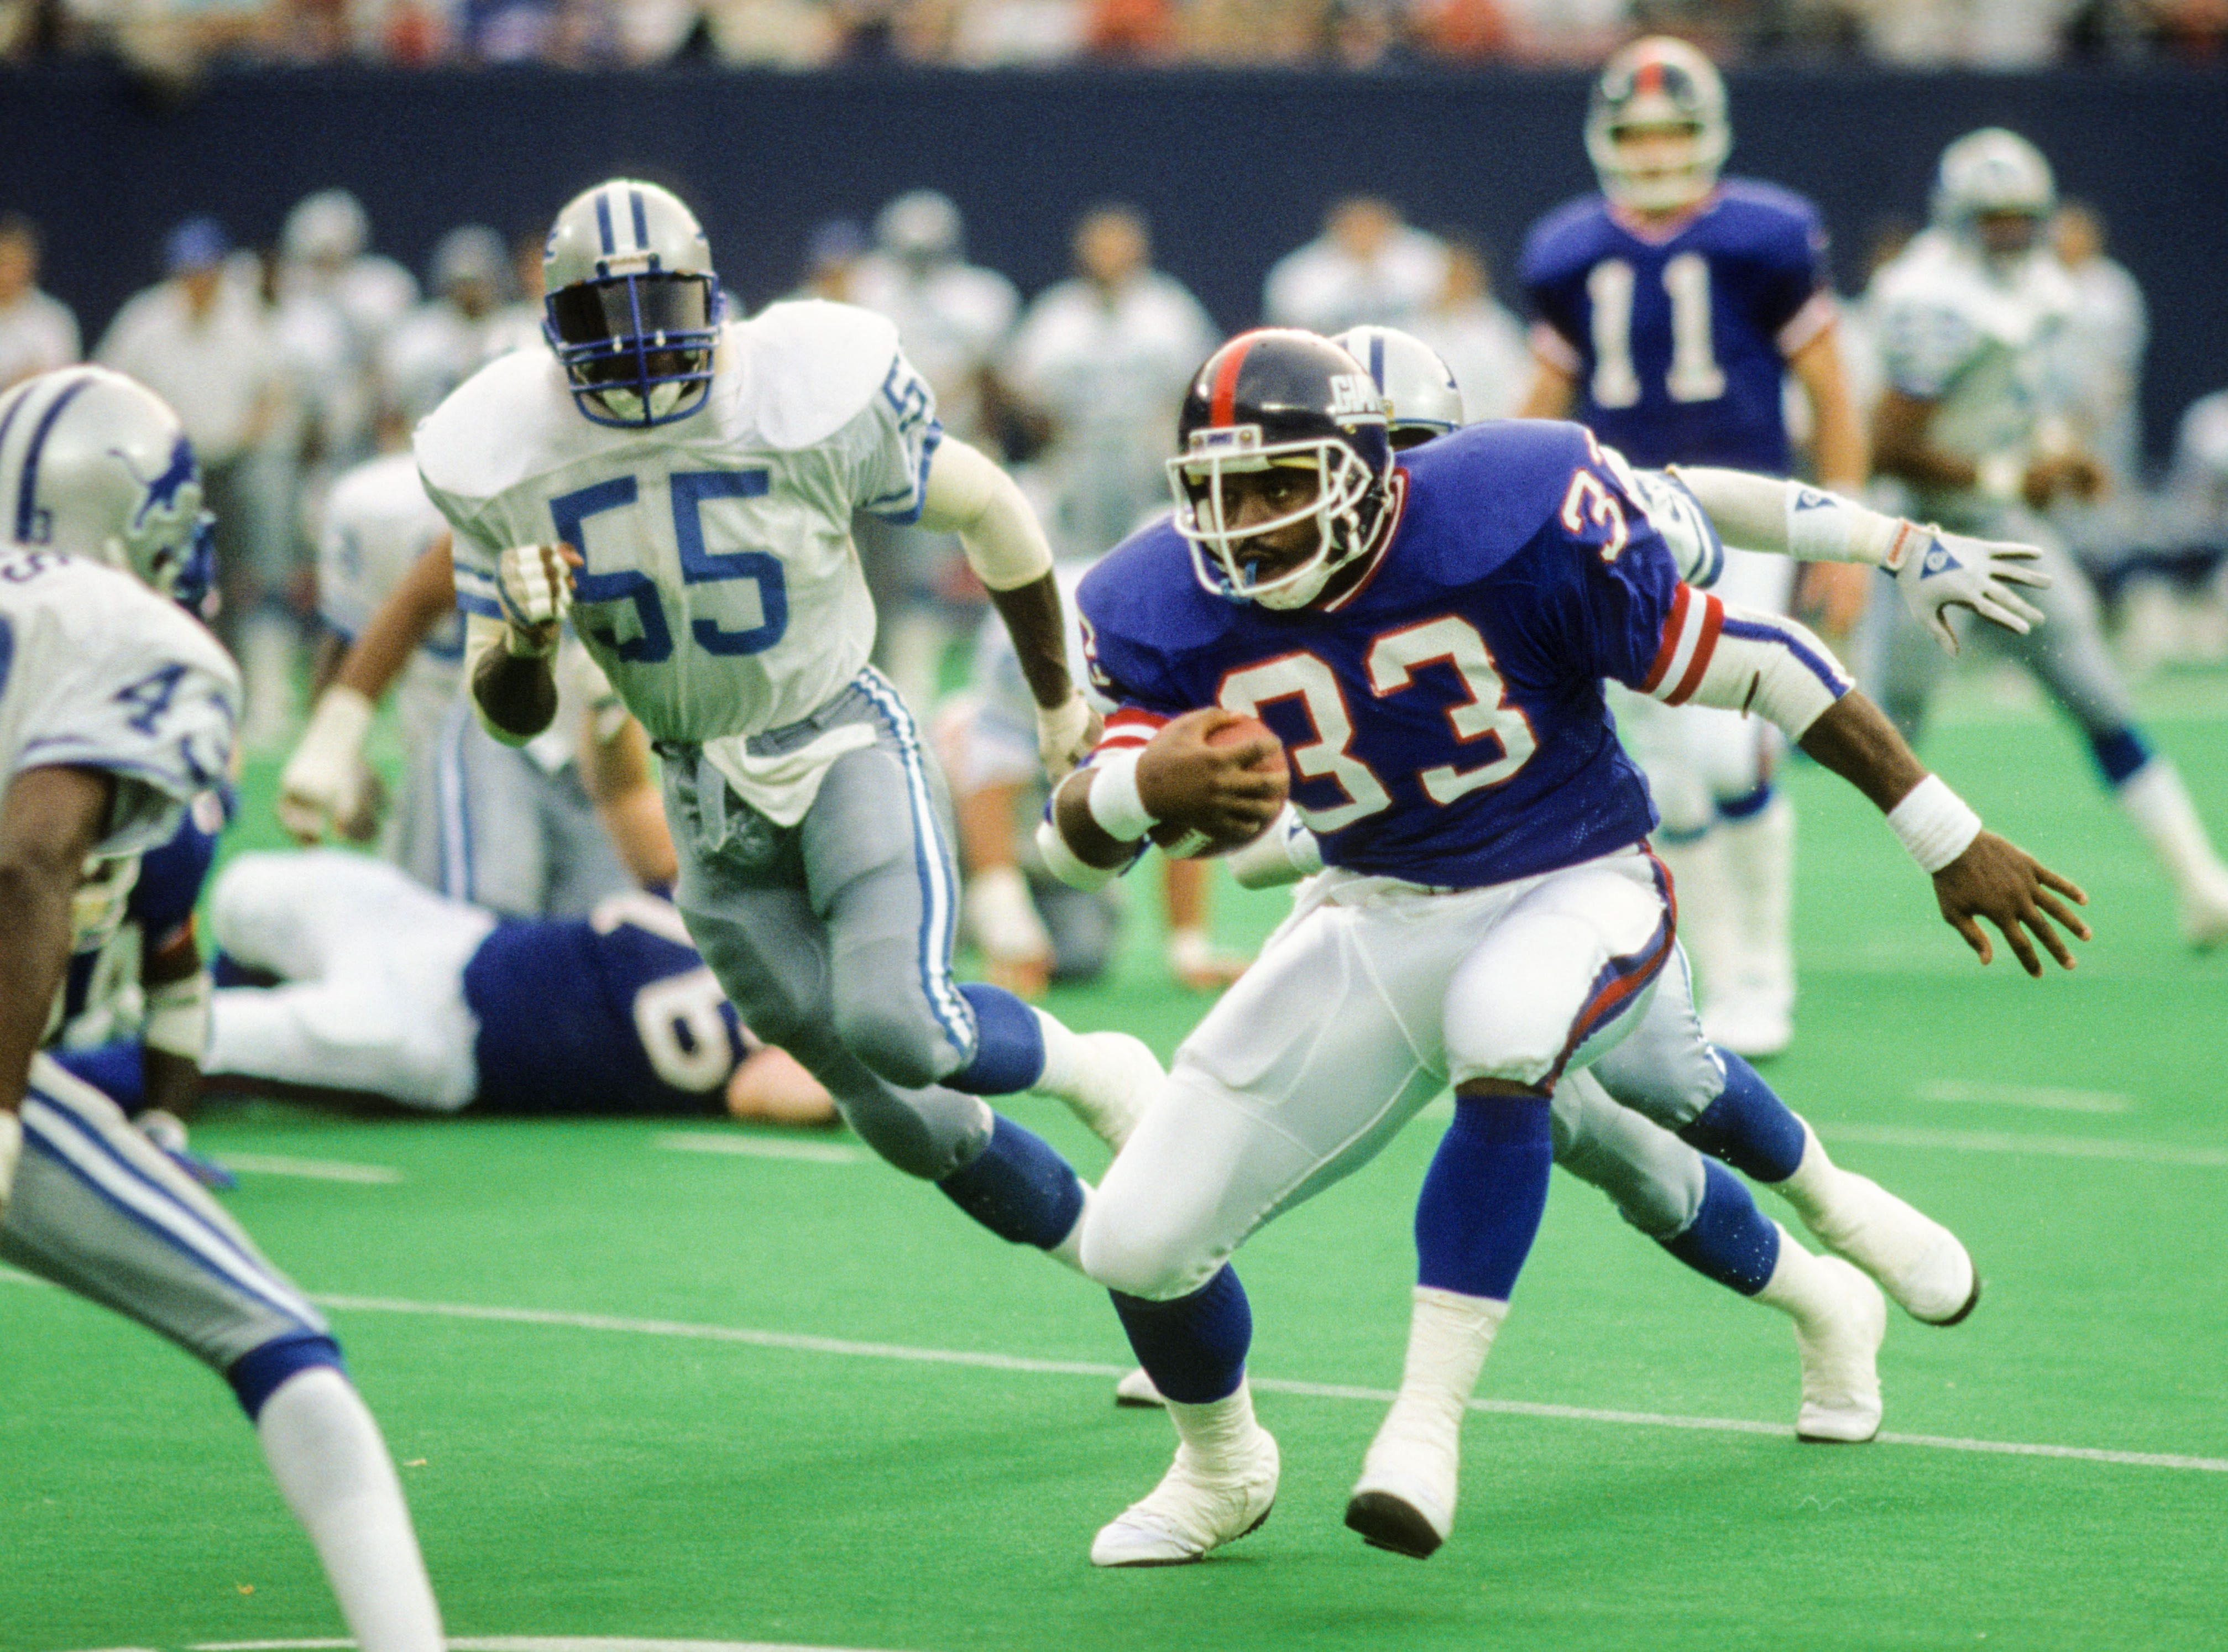 Sep 17, 1989; East Rutherford, NJ, USA; FILE PHOTO; New York Giants running back George Adams (33) in action against Detroit Lions linebacker Mike Cofer (55) at Giants Stadium. Mandatory Credit: Lou Capozzola-USA TODAY NETWORK